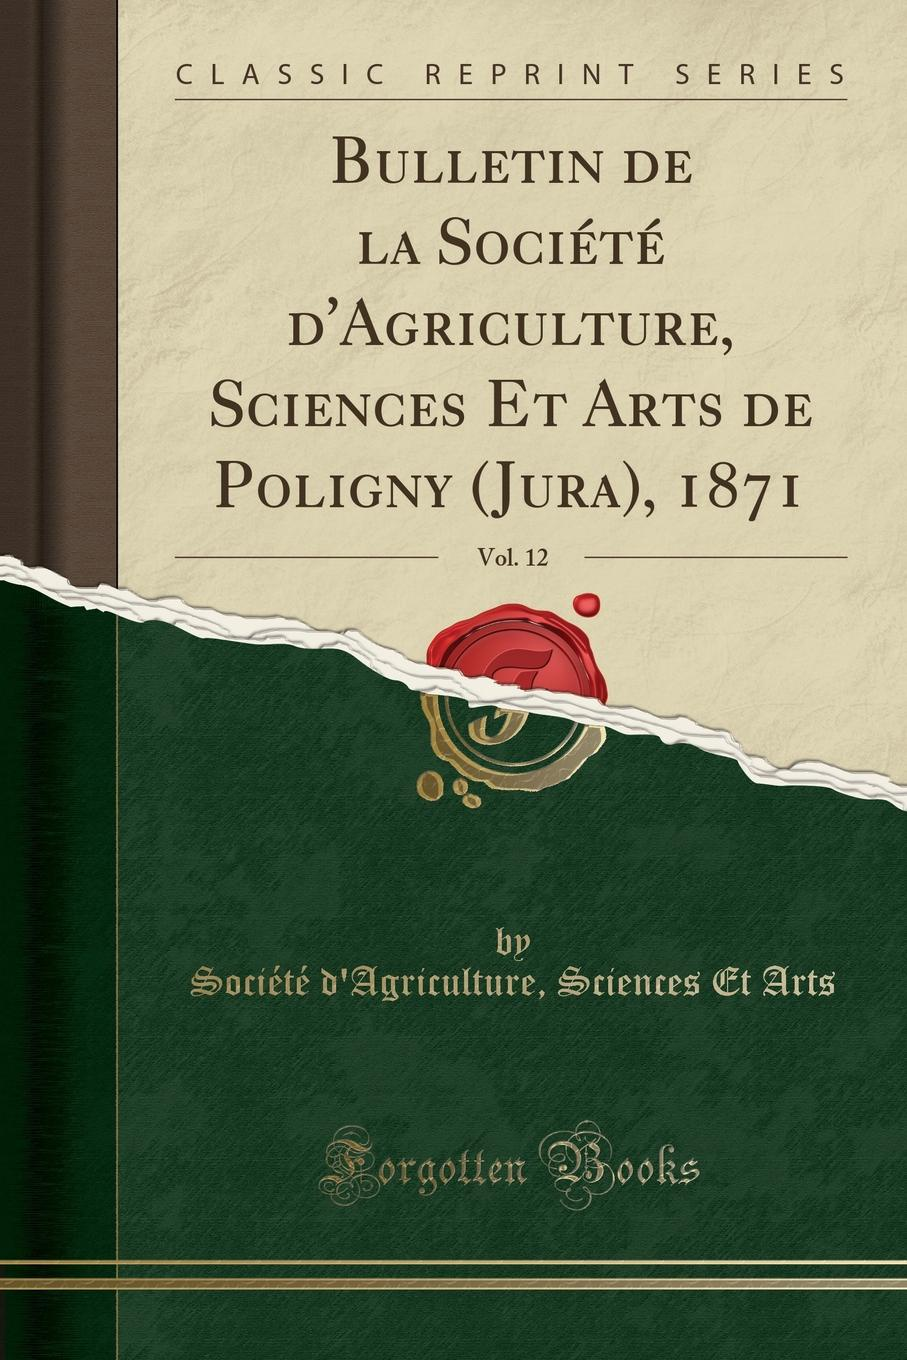 Bulletin de la Societe d.Agriculture, Sciences Et Arts de Poligny (Jura), 1871, Vol. 12 (Classic Reprint) Excerpt from Bulletin de la SociР?tР? d'Agriculture, Sciences...